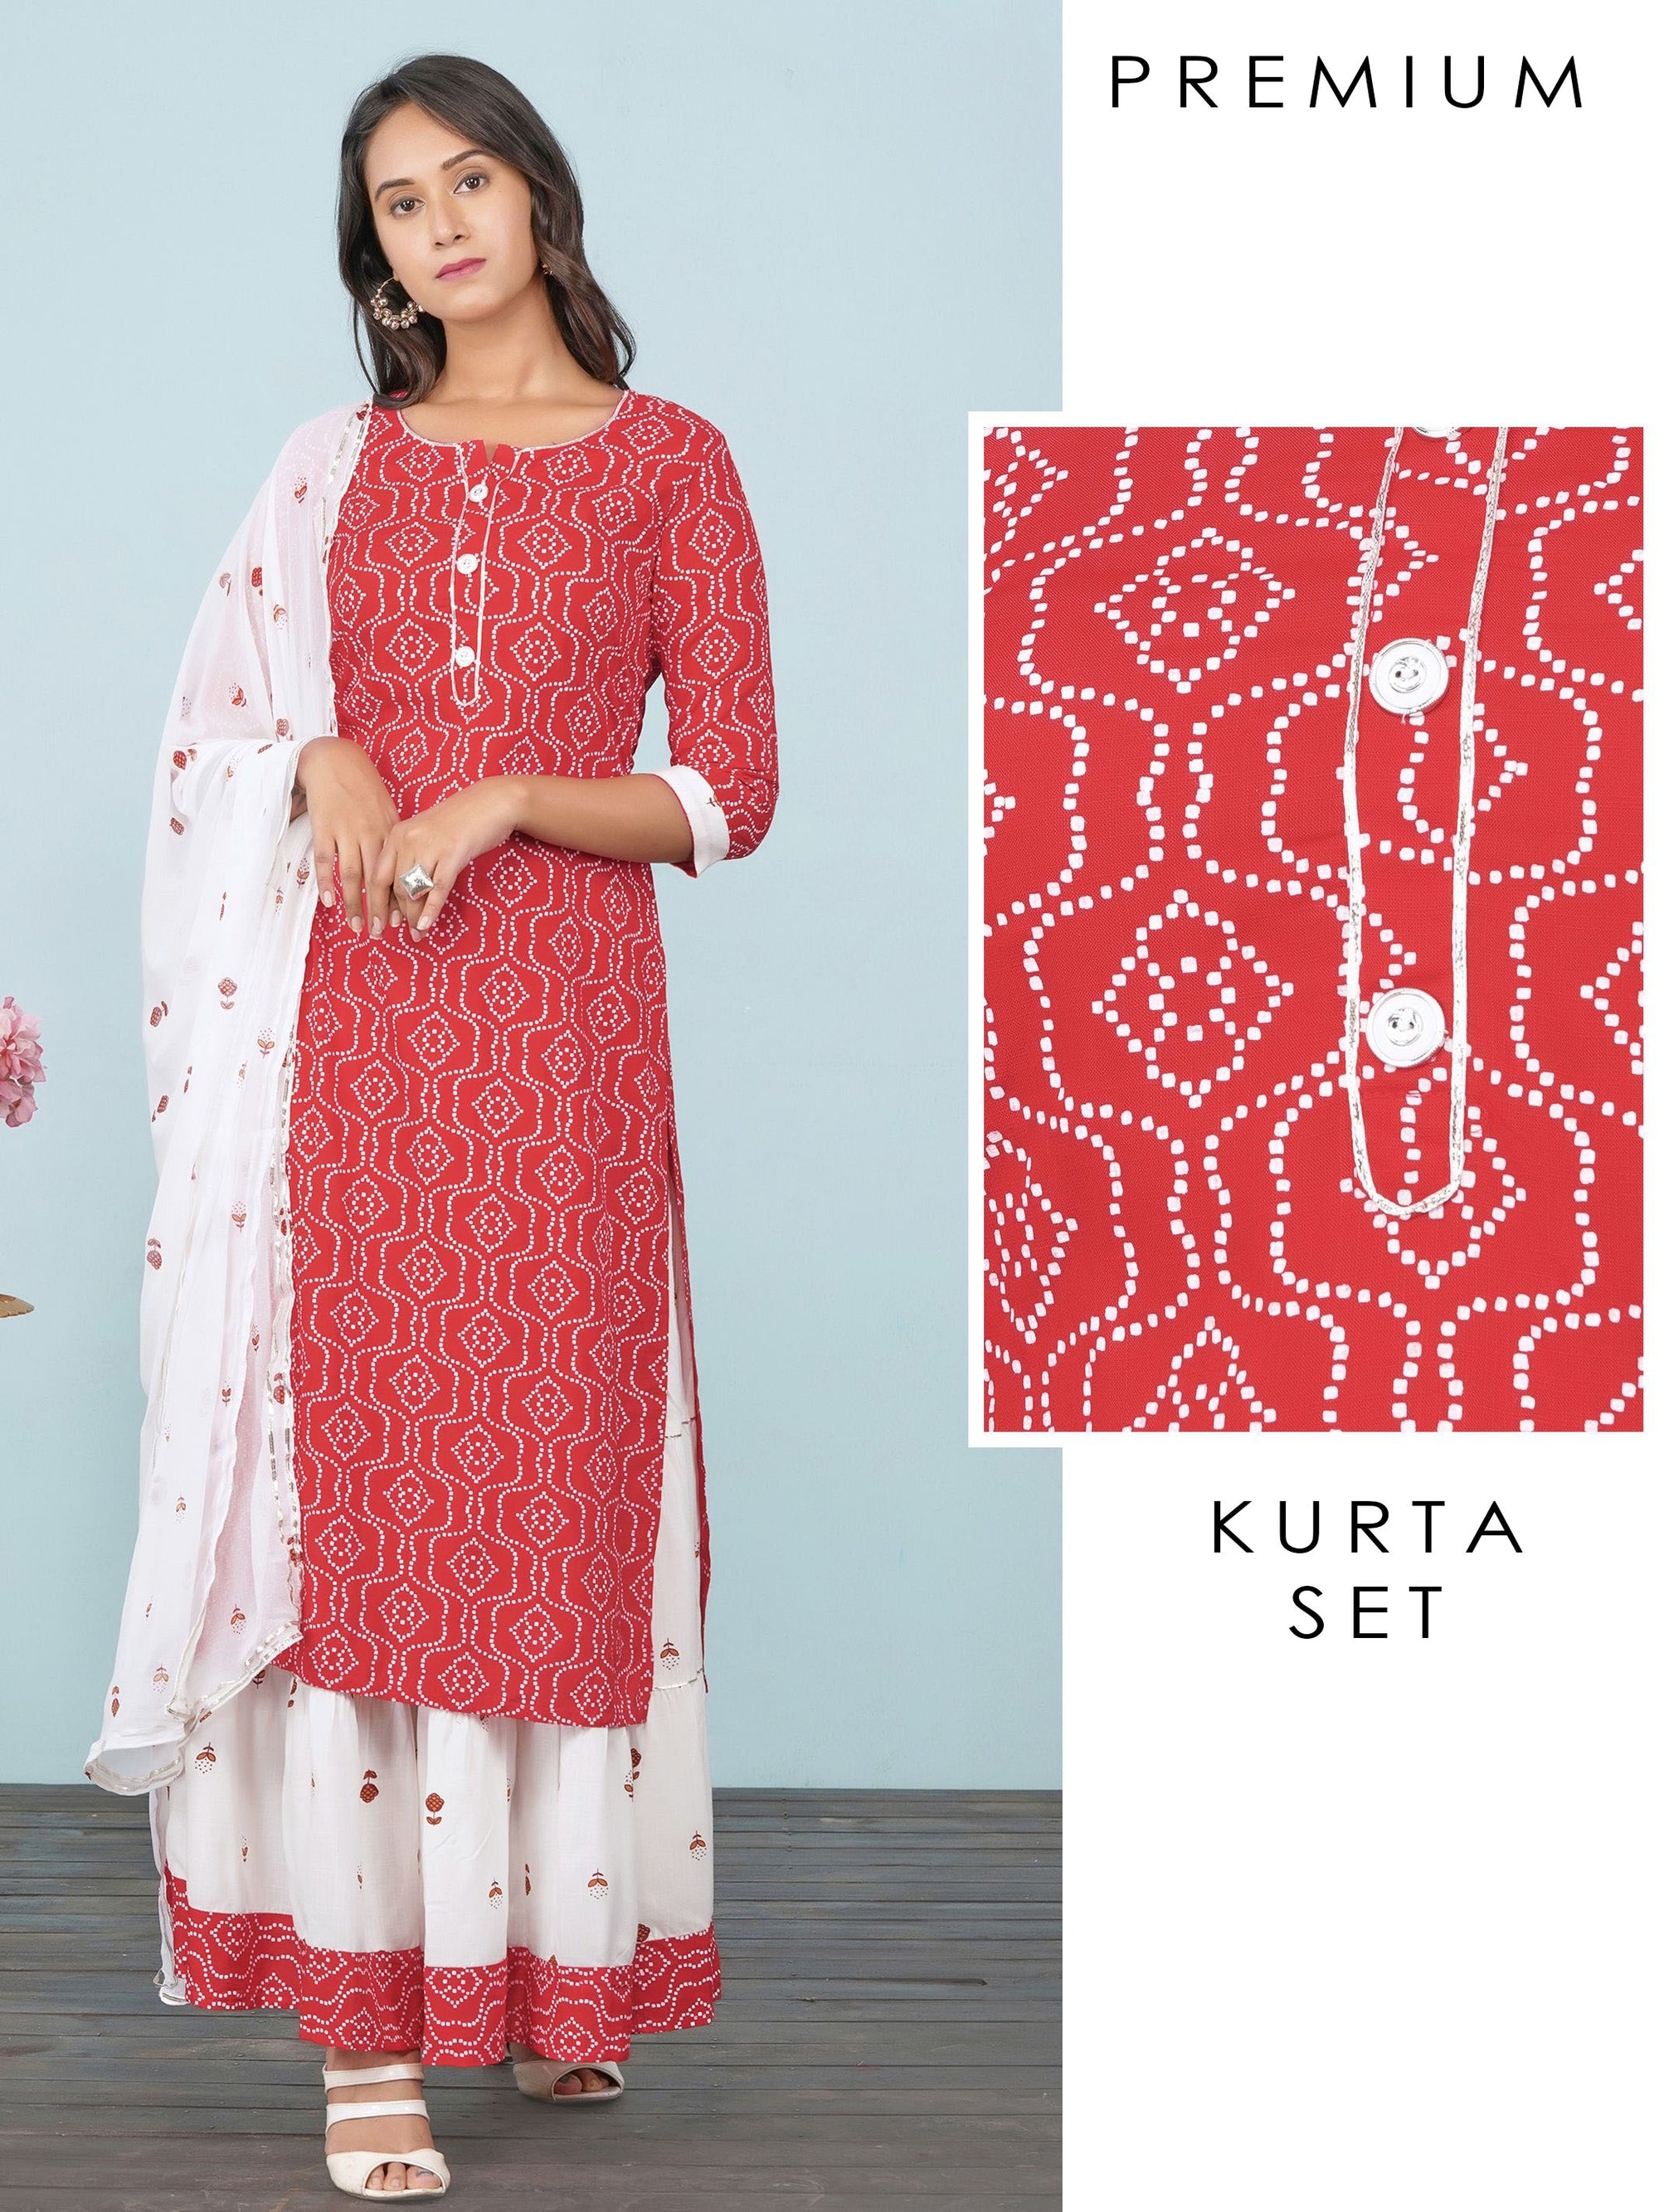 Abstract Printed Kurti, Tiered Skirt & Floral Printed Dupatta Set